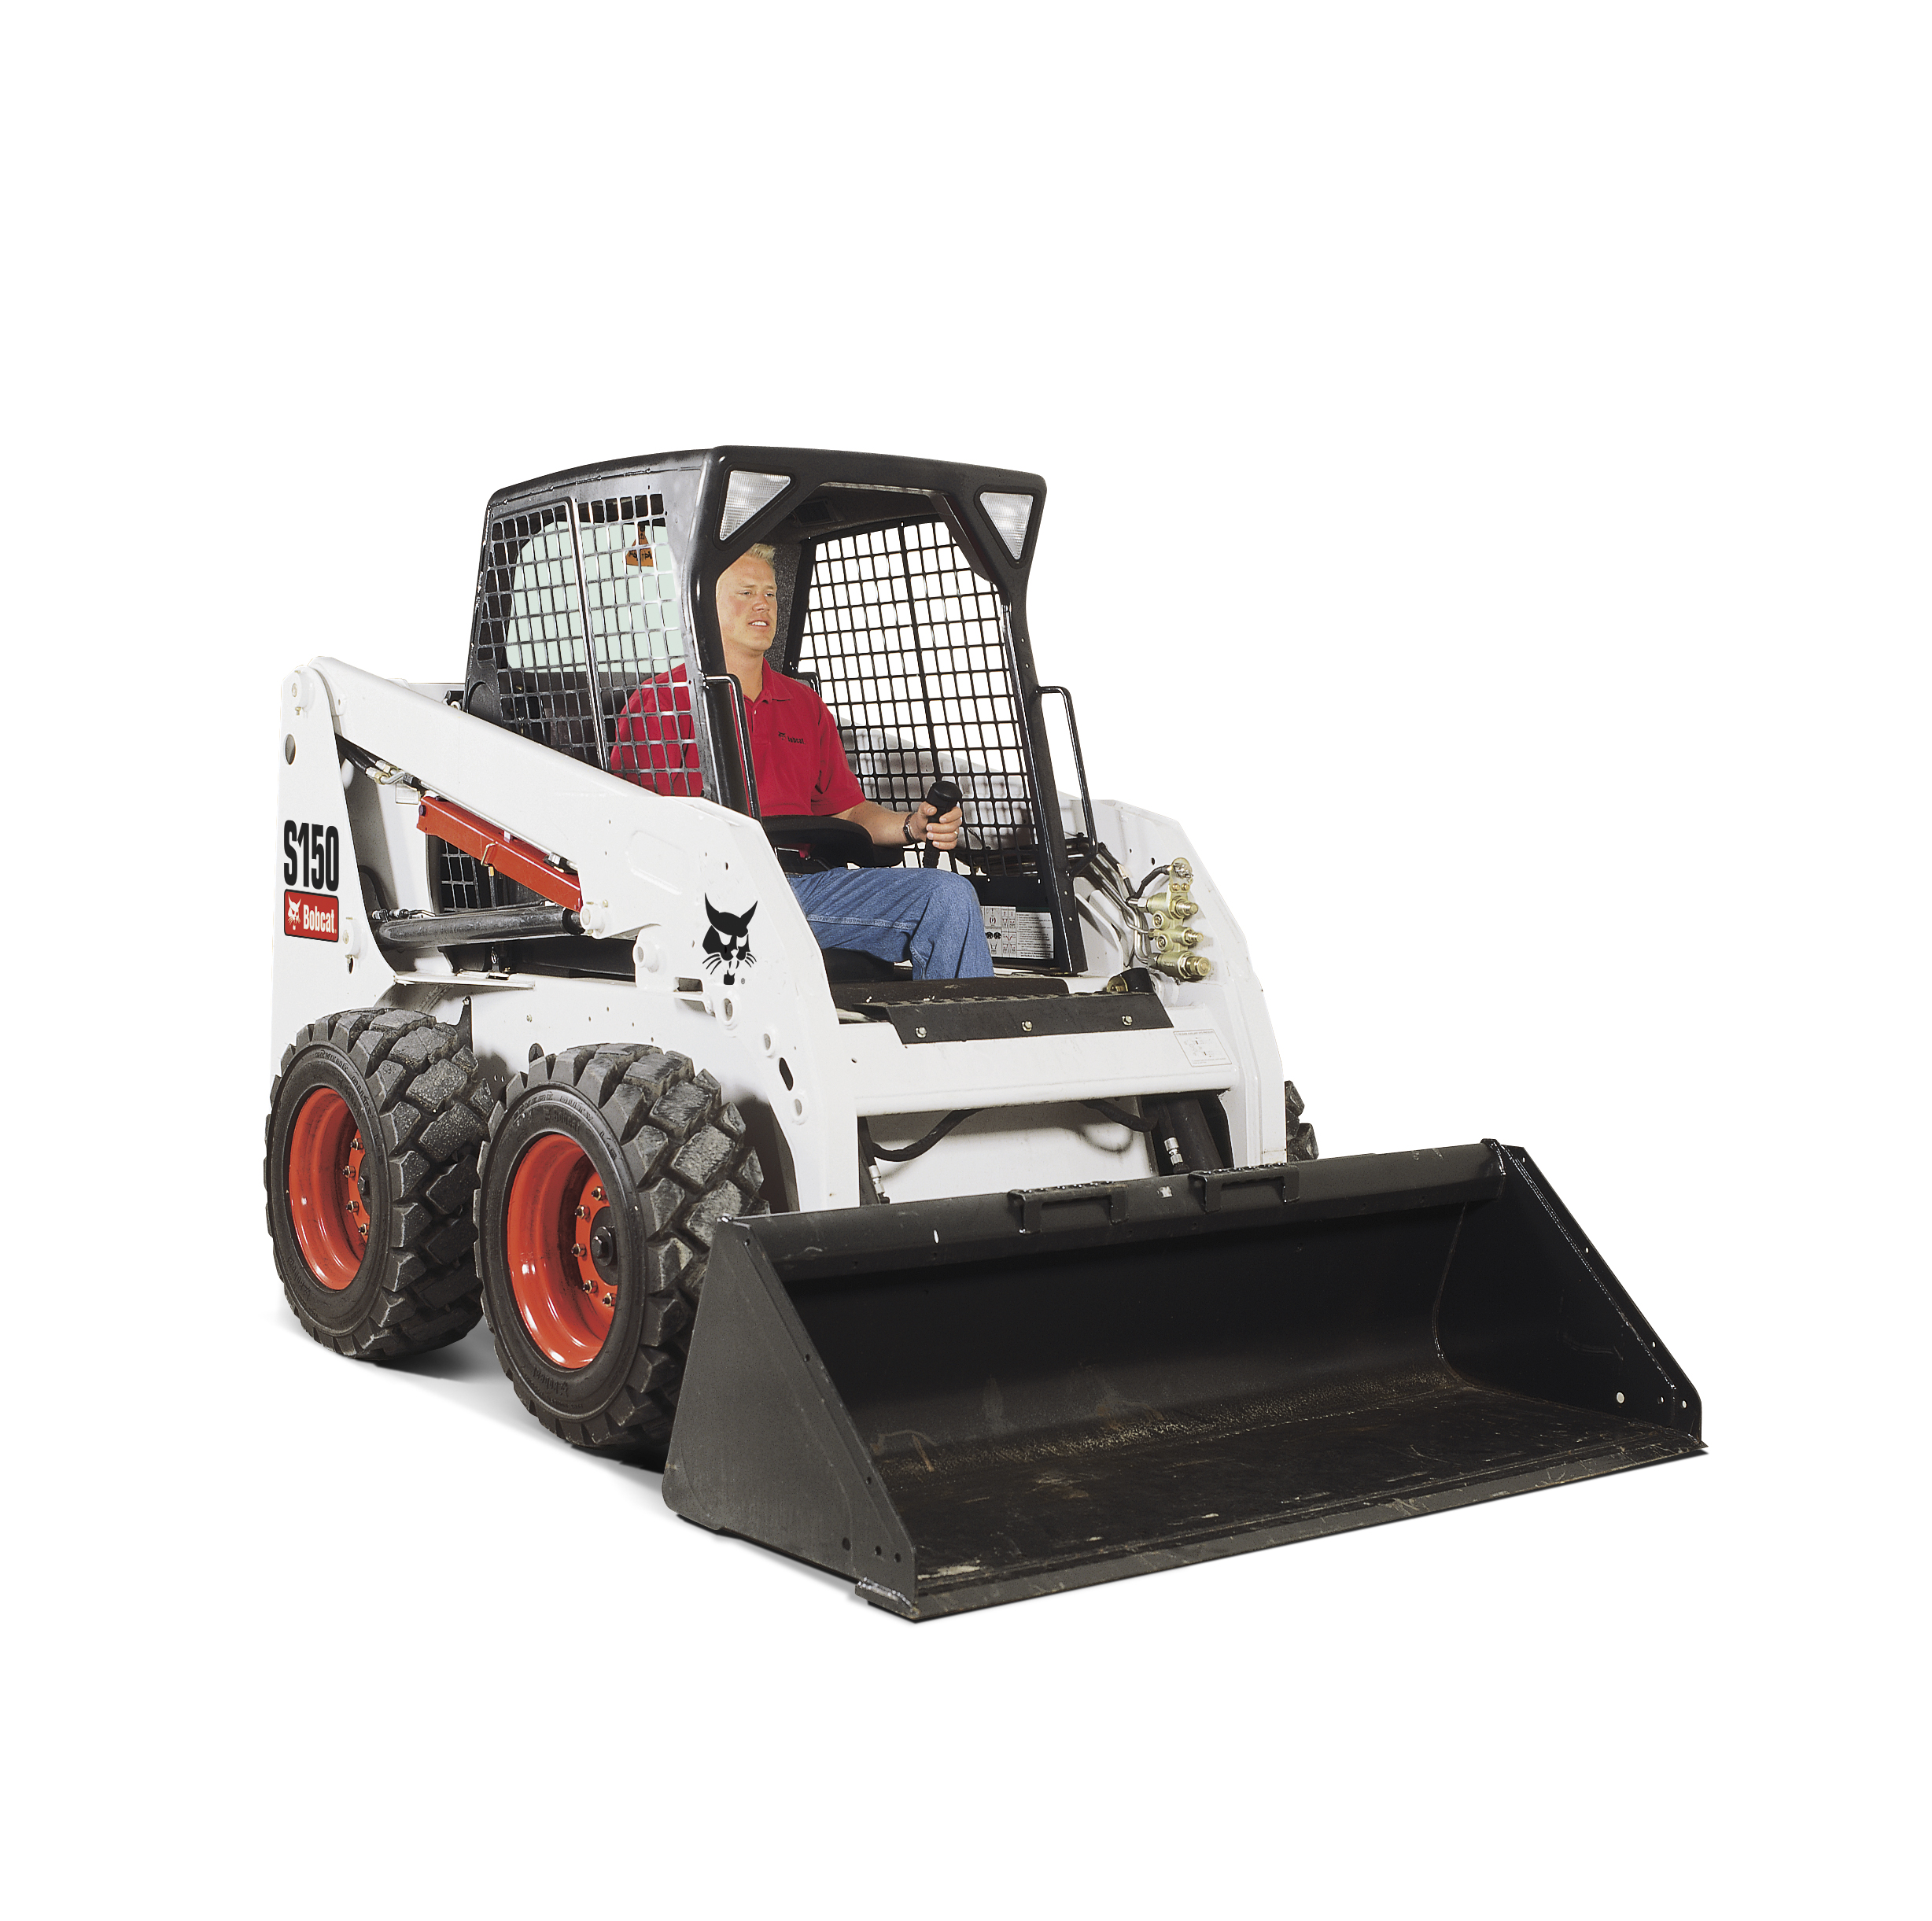 Tractors/Skid loaders